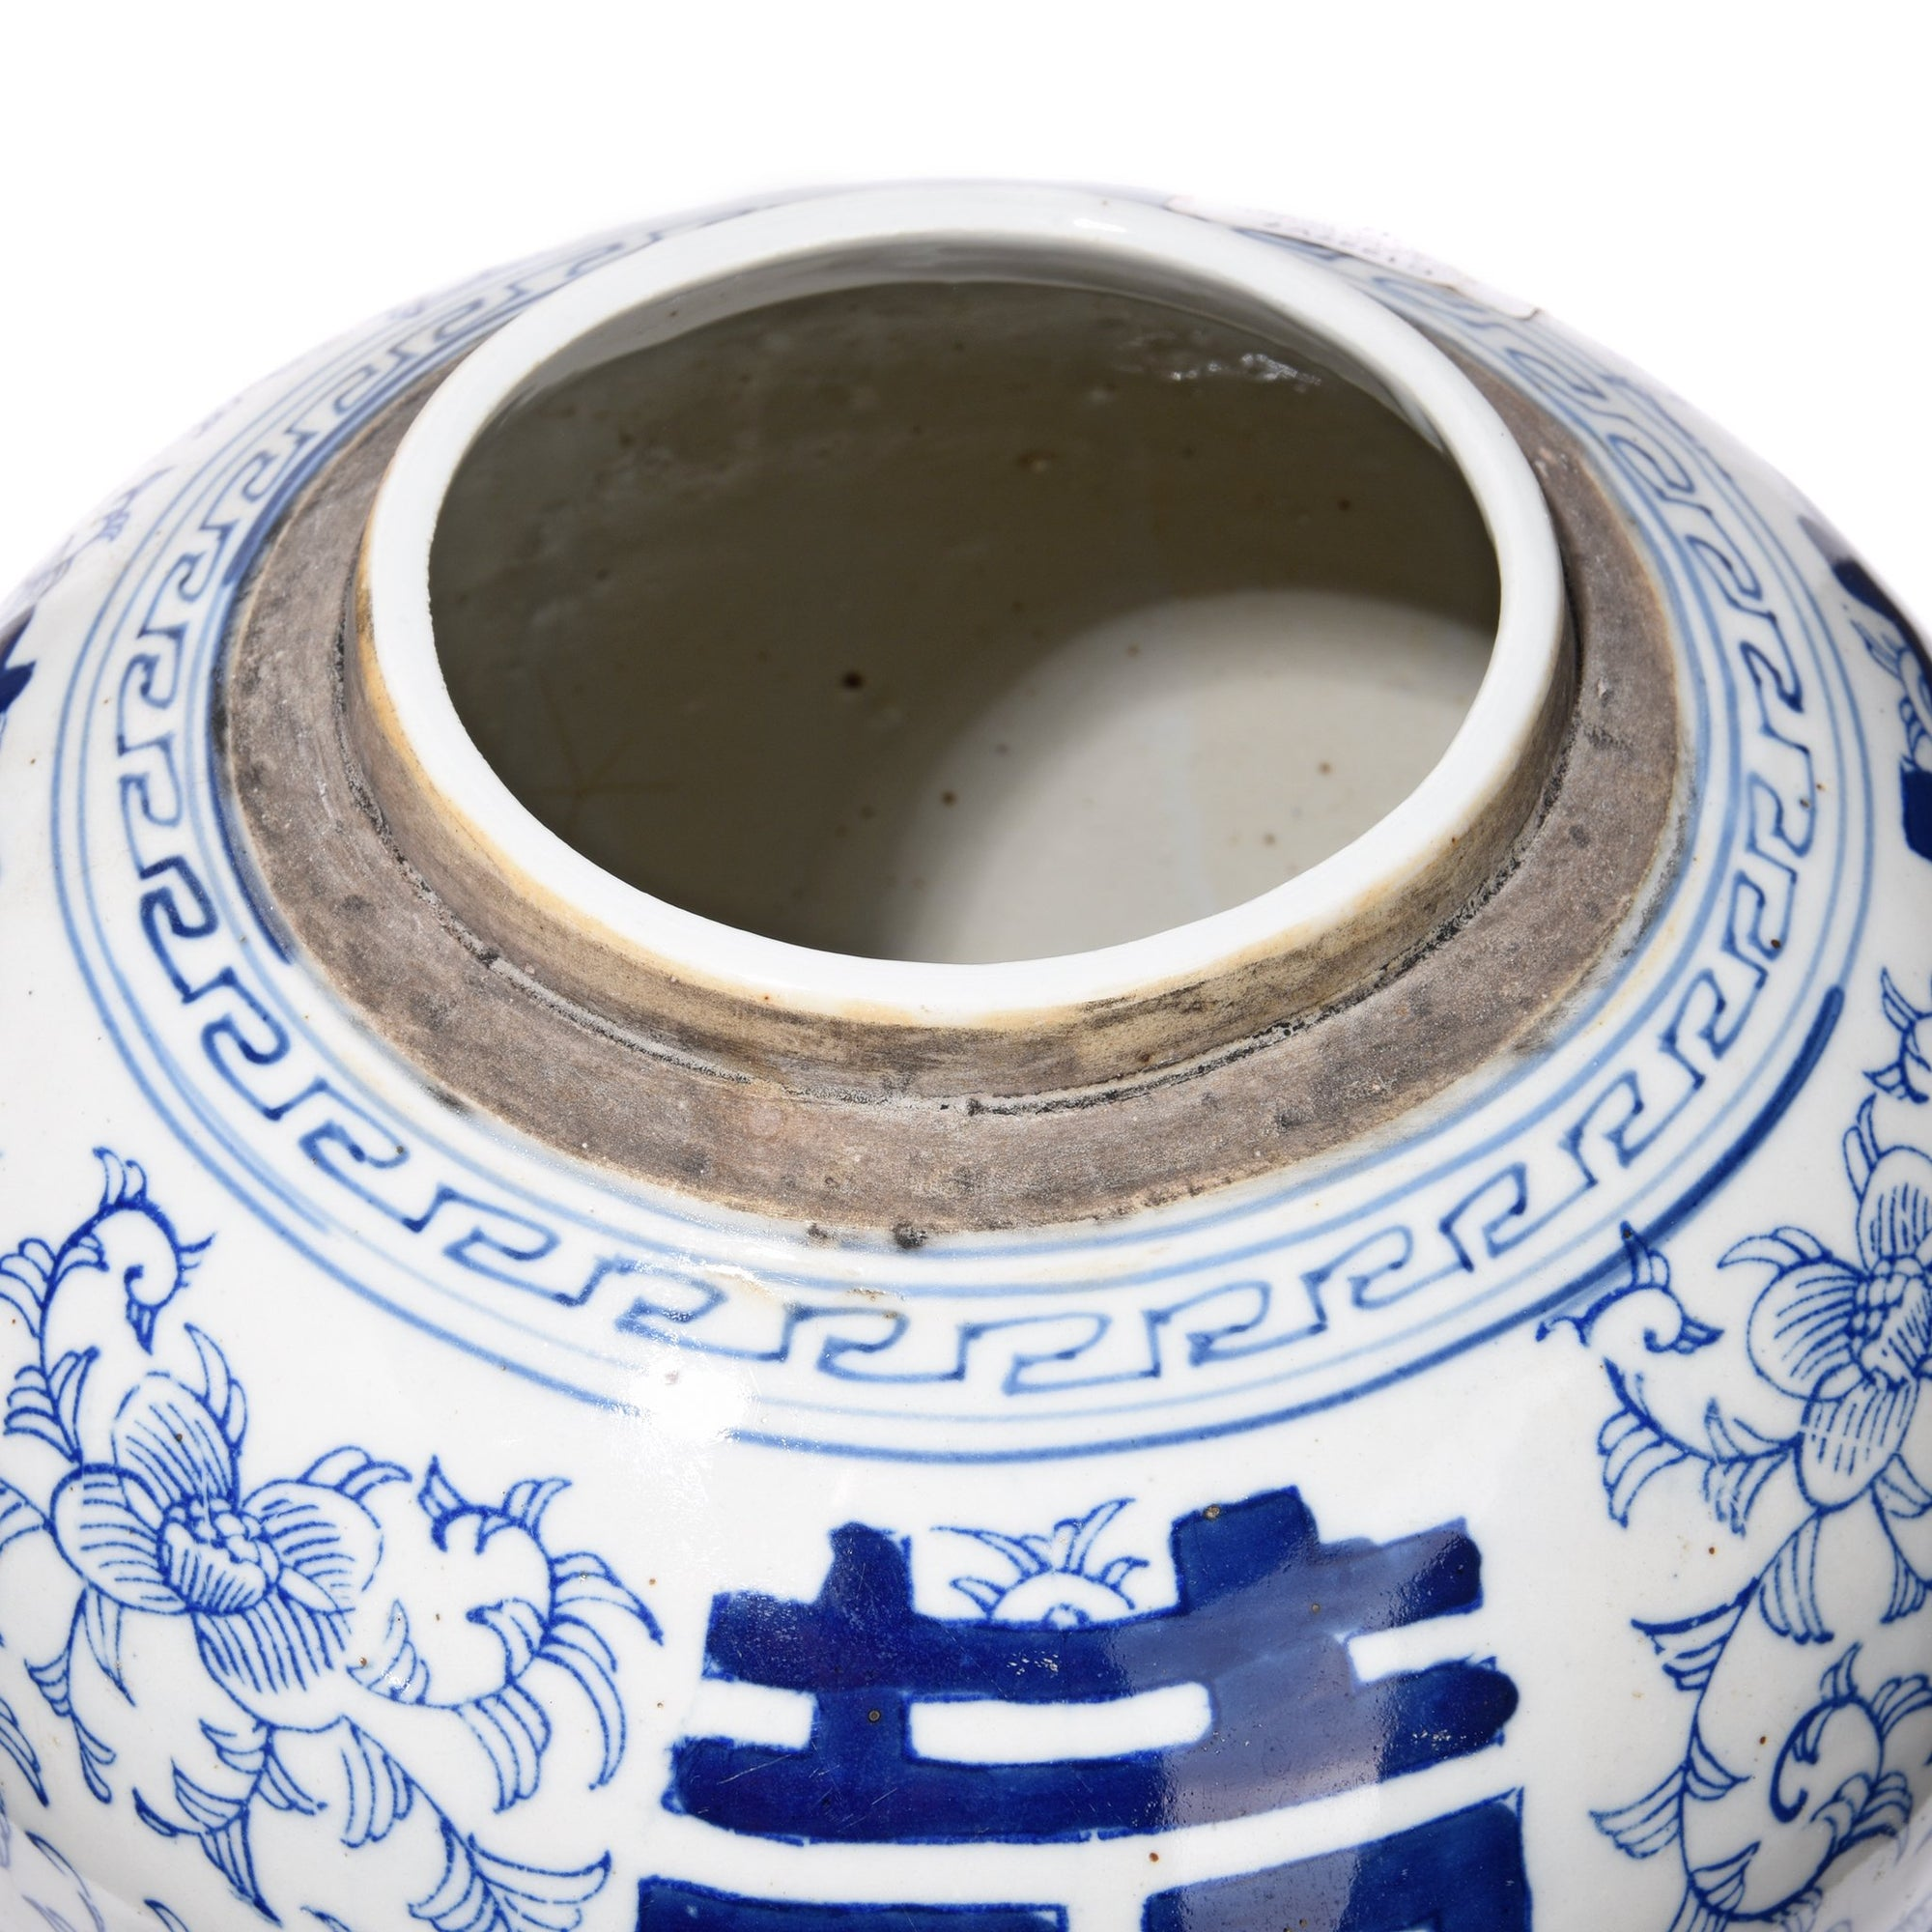 Reproduction Chinese Blue & White Porcelain Ginger Jar - Double Happiness | Indigo Antiques